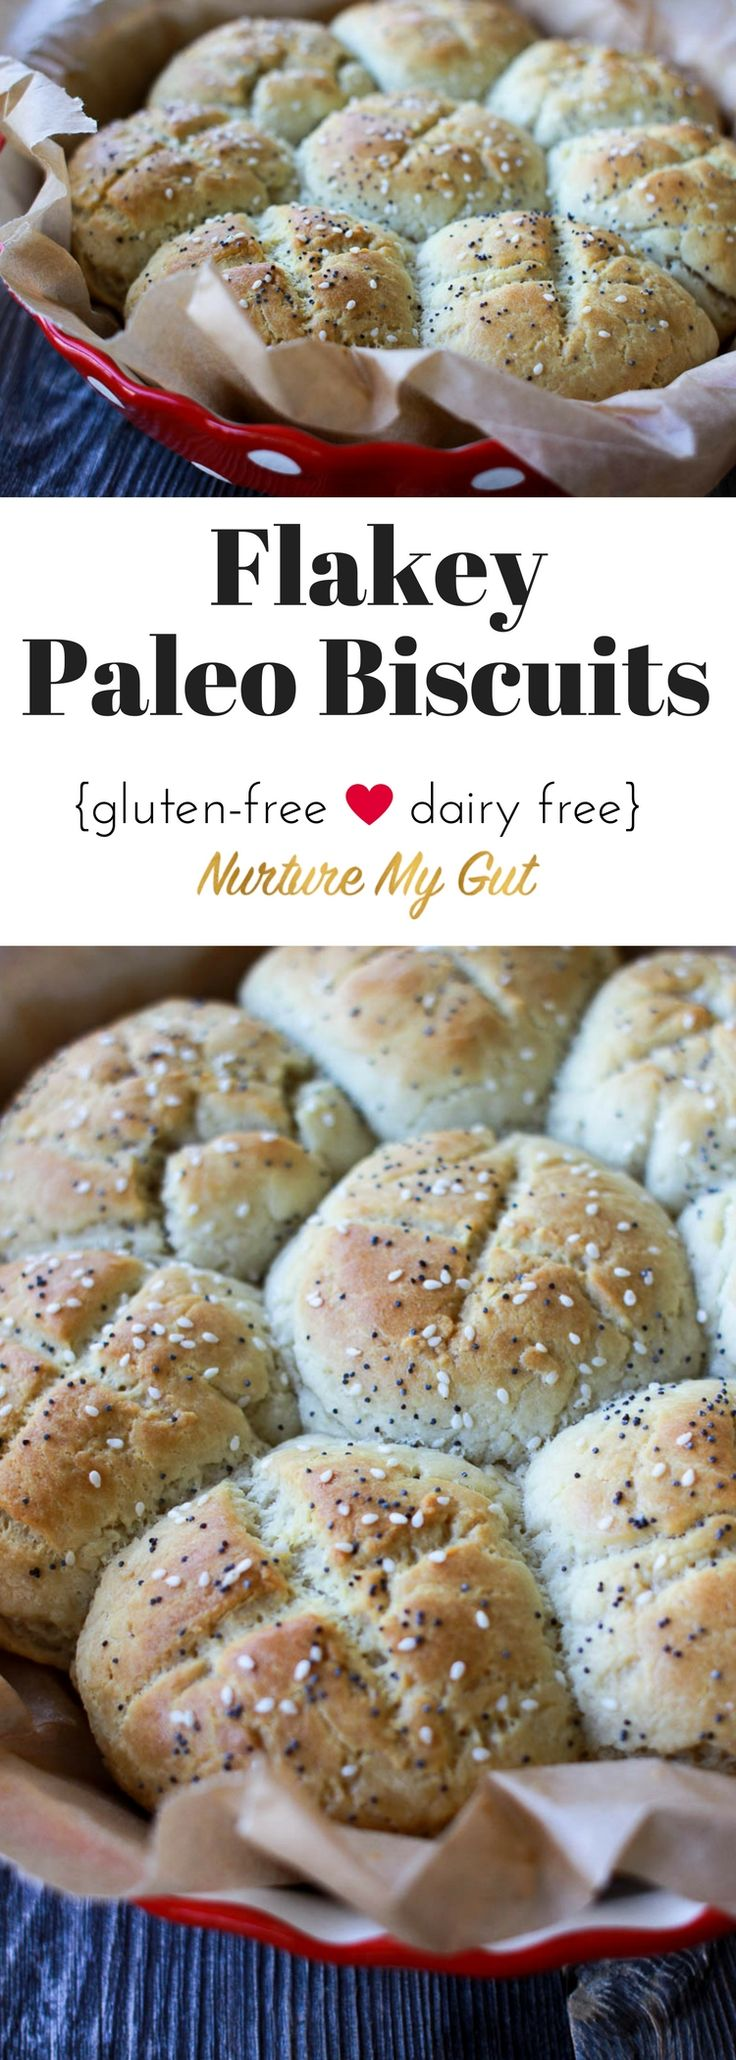 These Flakey Paleo Biscuits have a crispy exterior, a warm & flakey center and a pop of miniature seeds that will bring back flashbacks of bread from long ago.  Made with blanched almond flour, tapioca flour and potato starch.  Grain free, gluten free & dairy free.